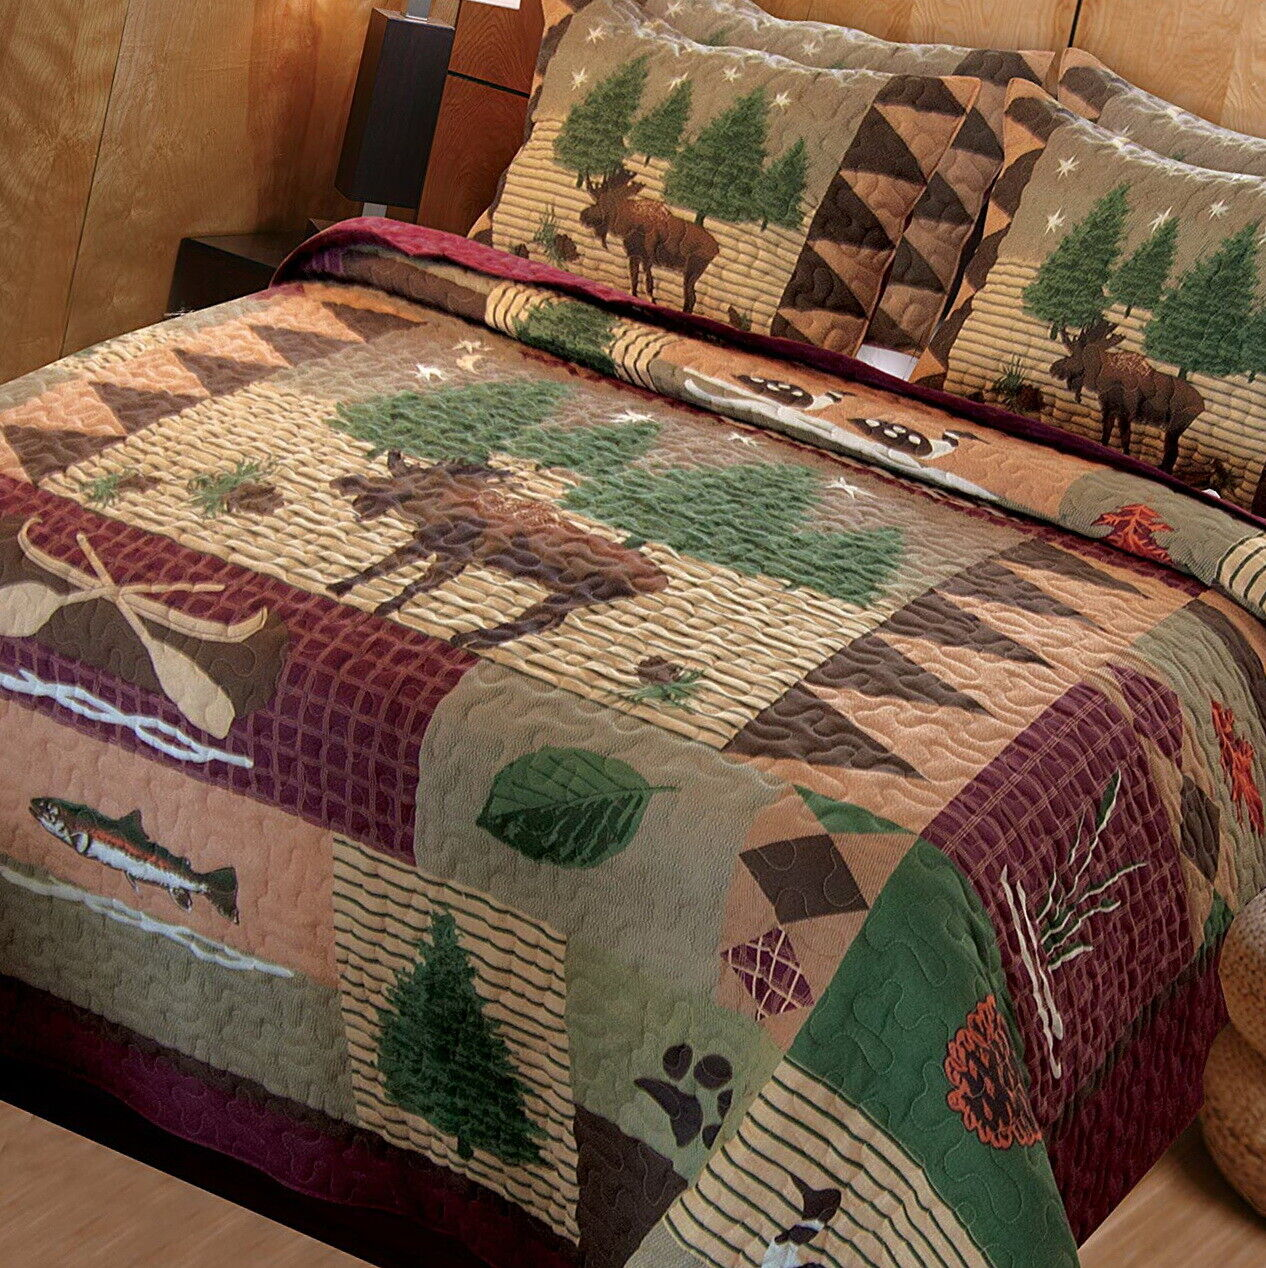 Queen King Size Bed Log Cabin Plaid Lodge Bedroom Moose 3 pc